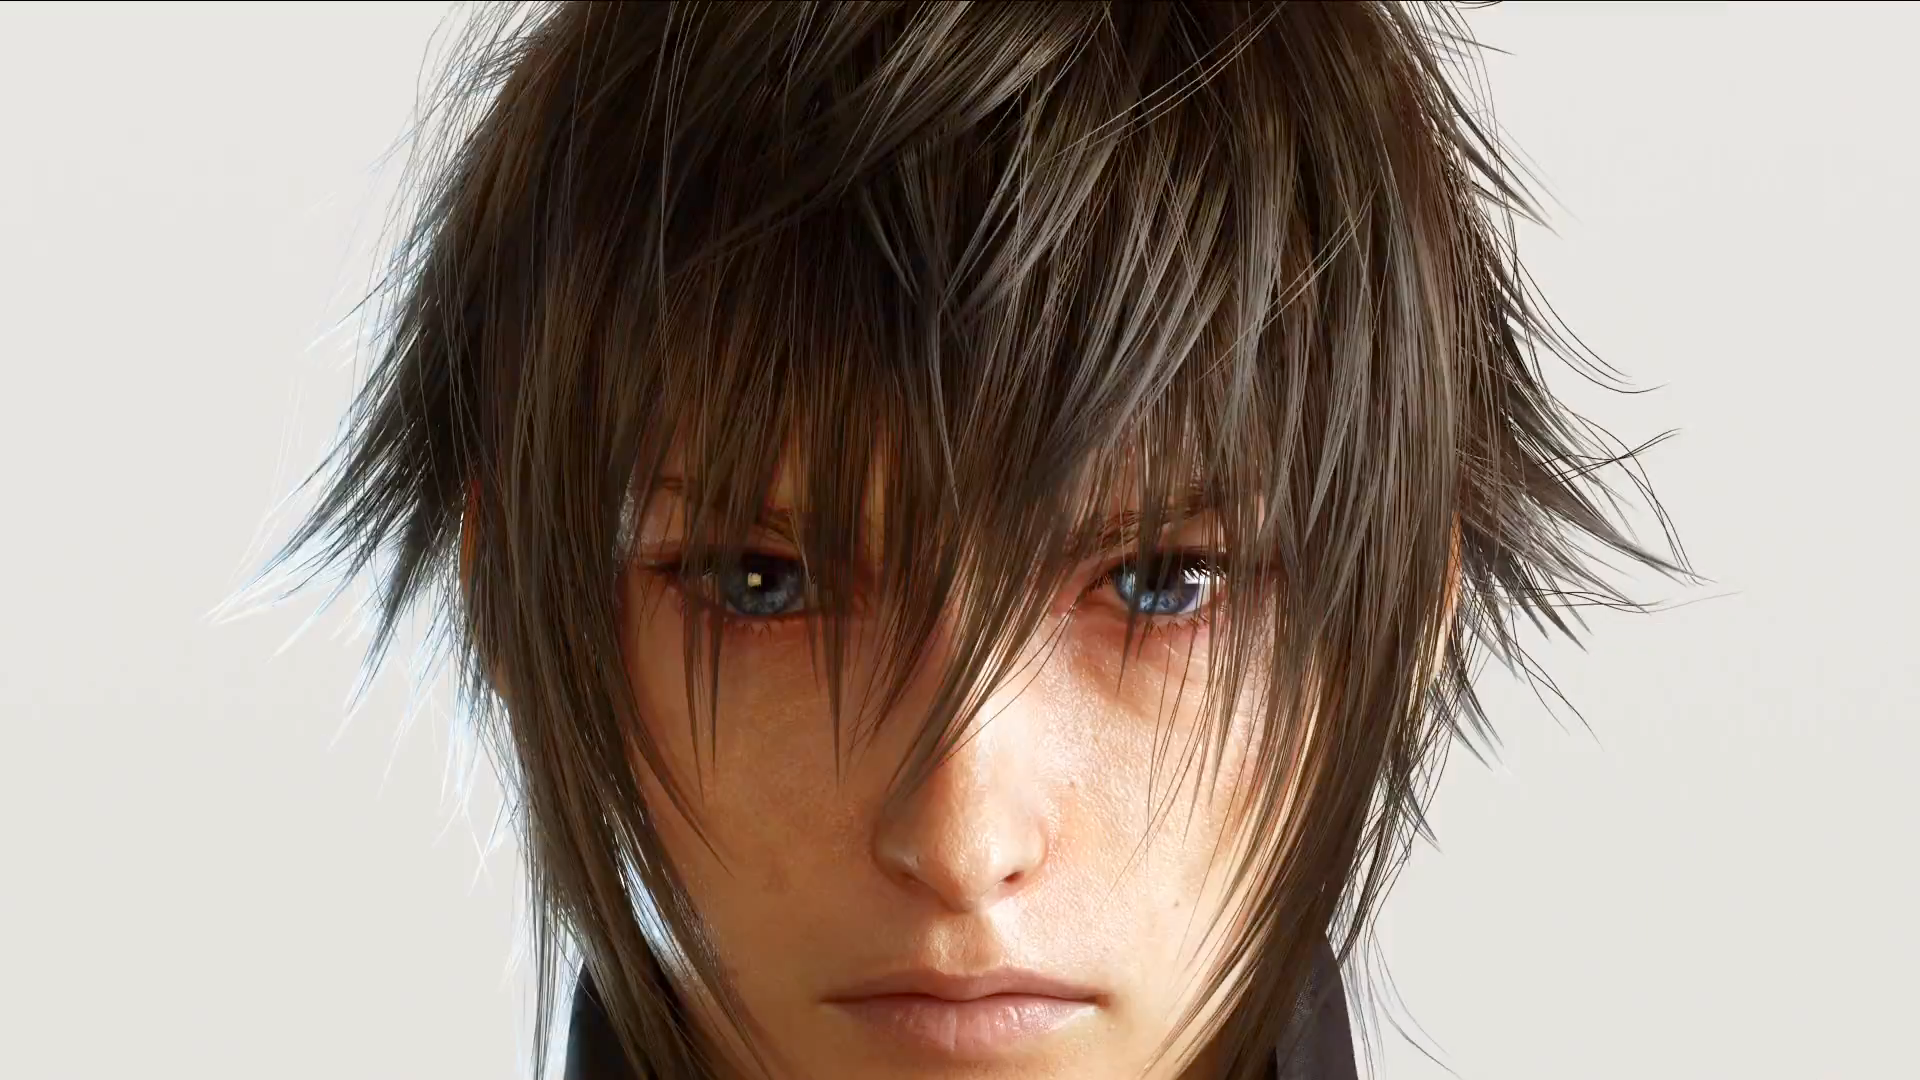 Noctis' Eyes are a gentle blue color when he is not using the powers bestowed upon him.